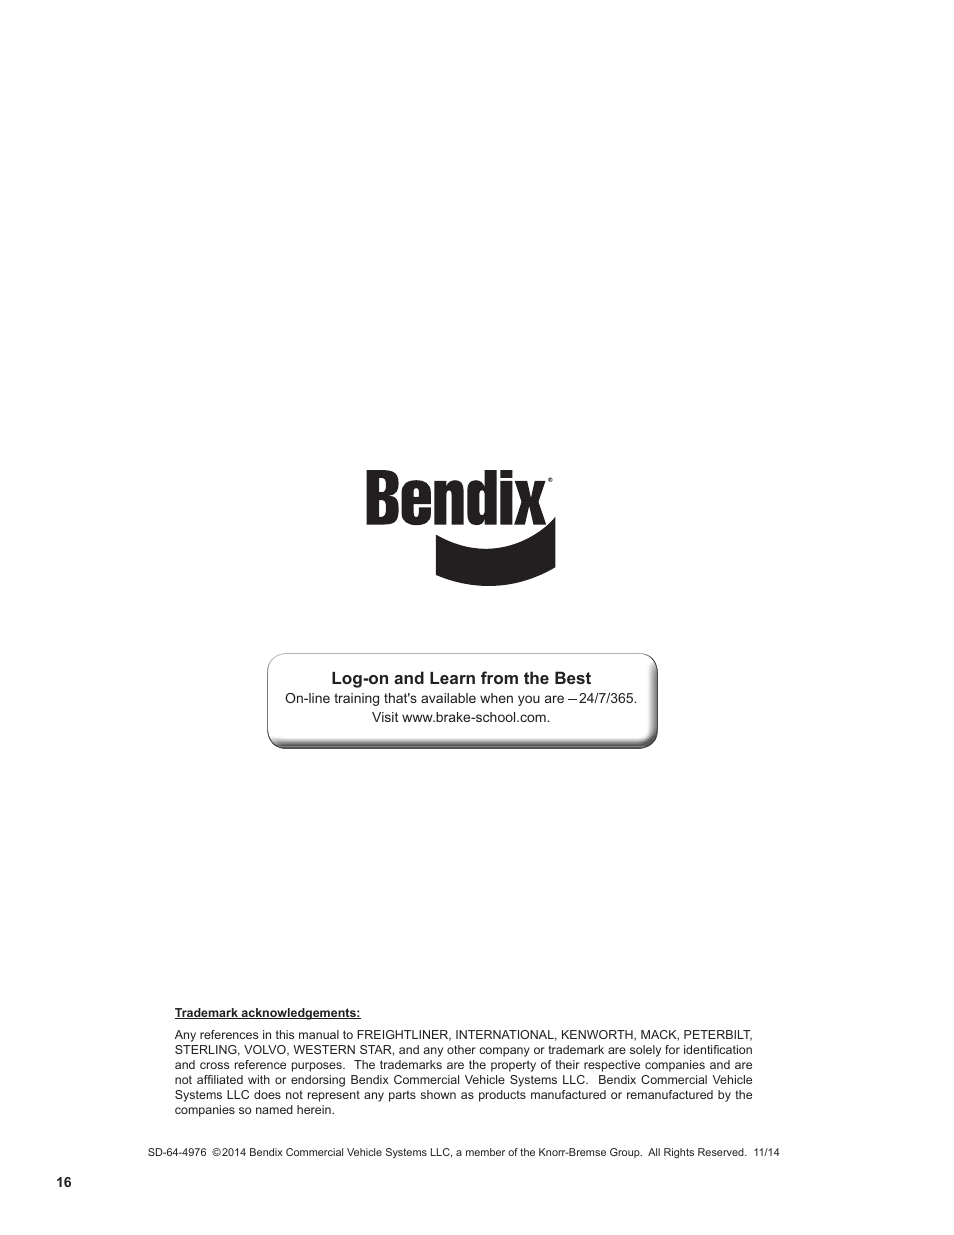 Log-on and learn from the best | Bendix Commercial Vehicle Systems